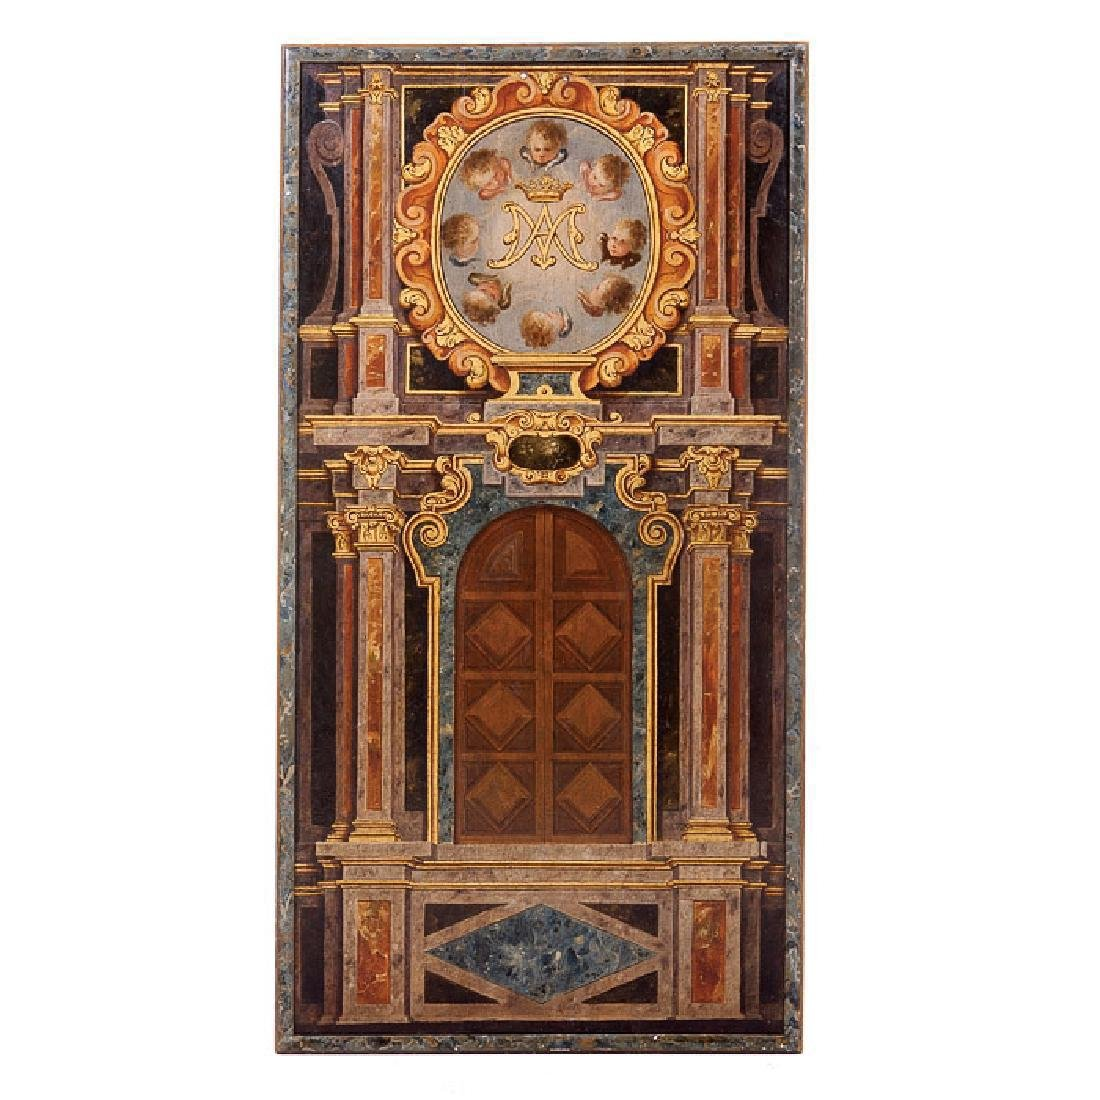 Mariano Panel Painted Trompe L'oeil